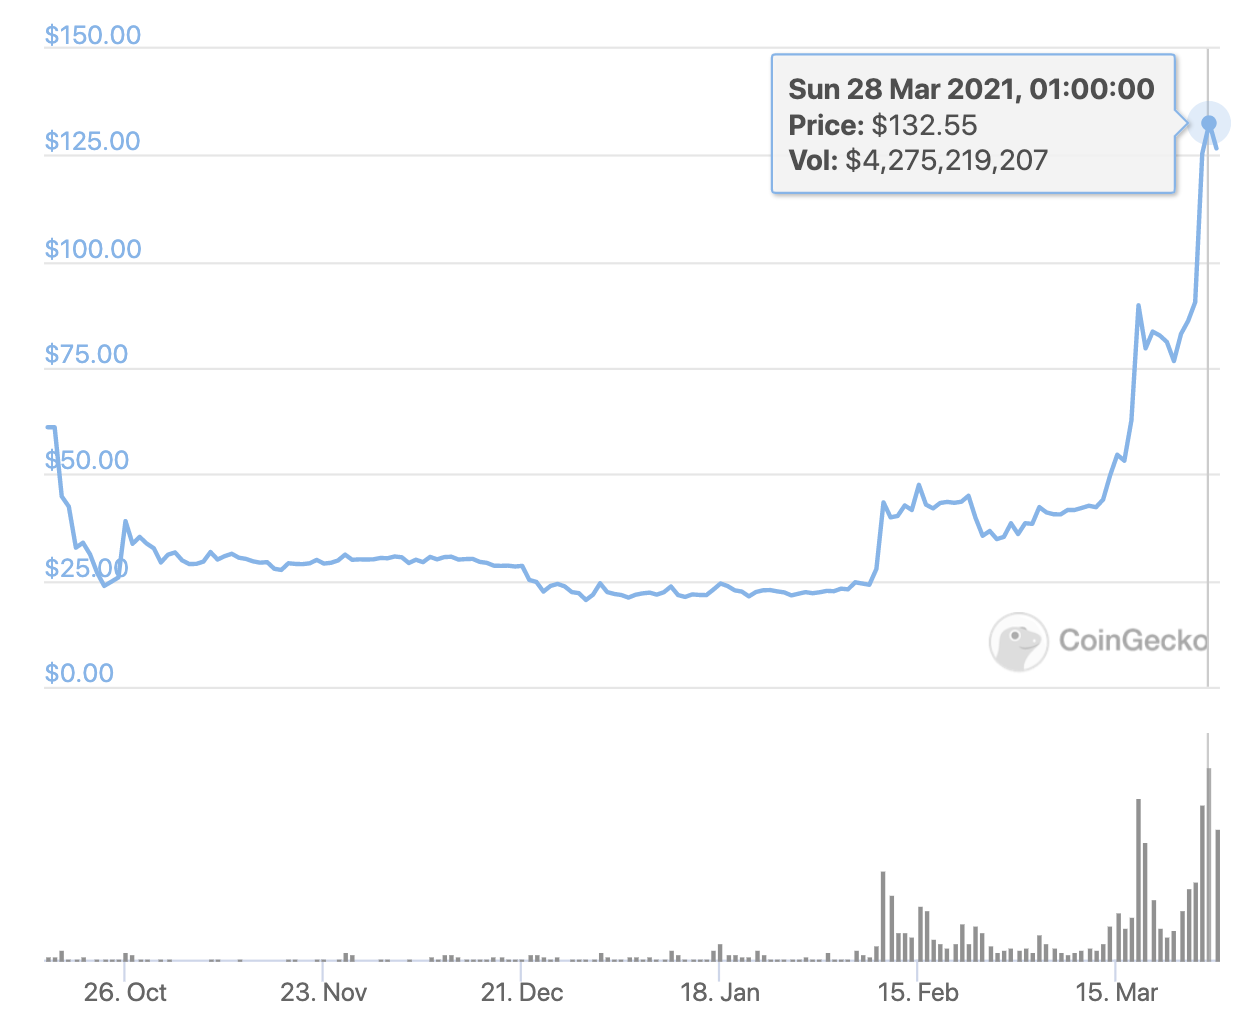 Filecoin's price, March 2021